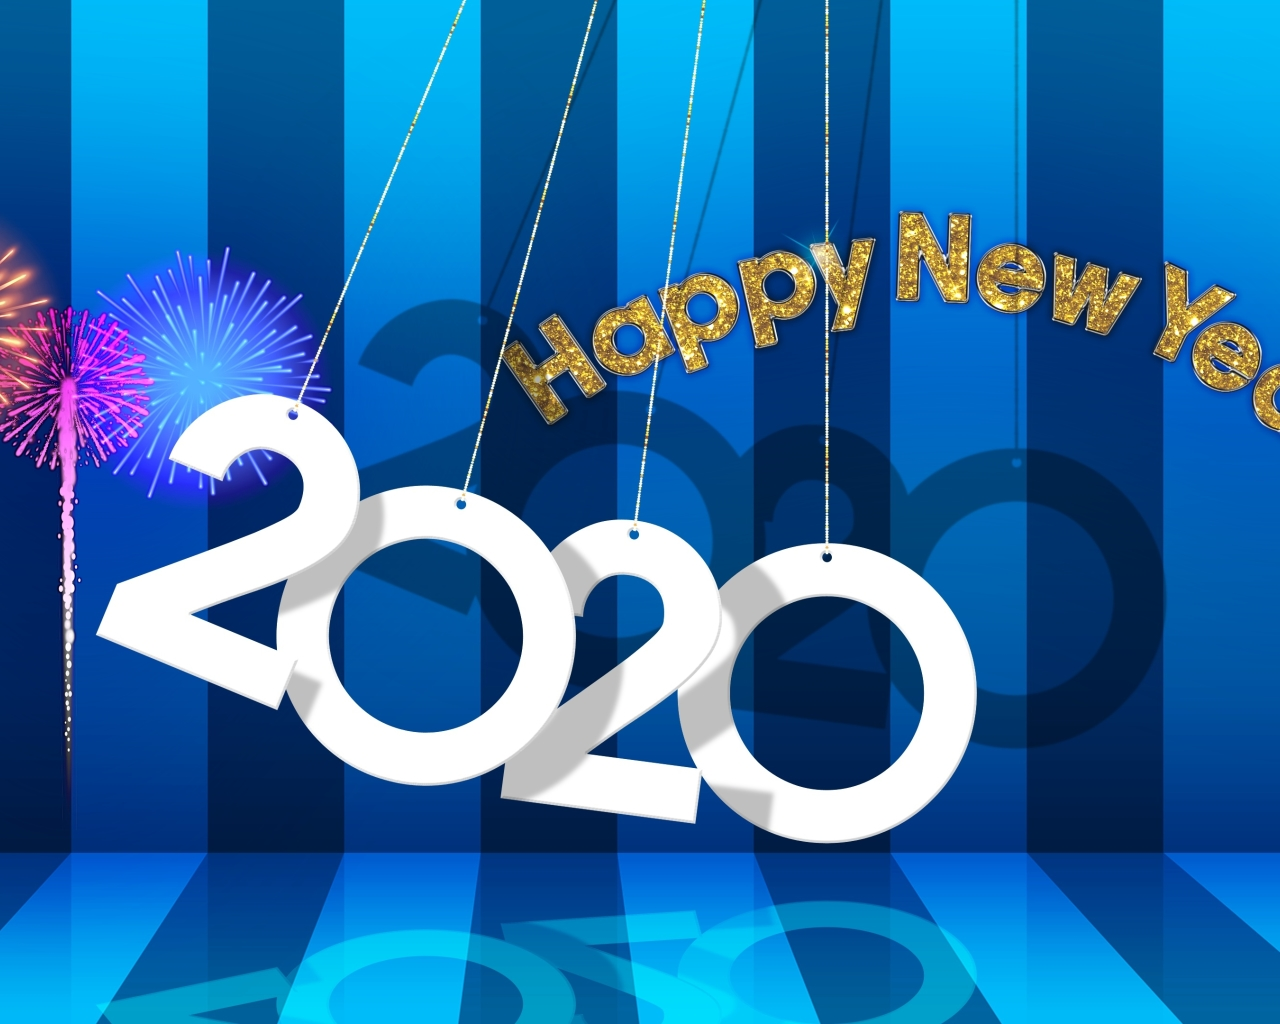 1280x1024 New Year 2020 1280x1024 Resolution Wallpaper, HD Other